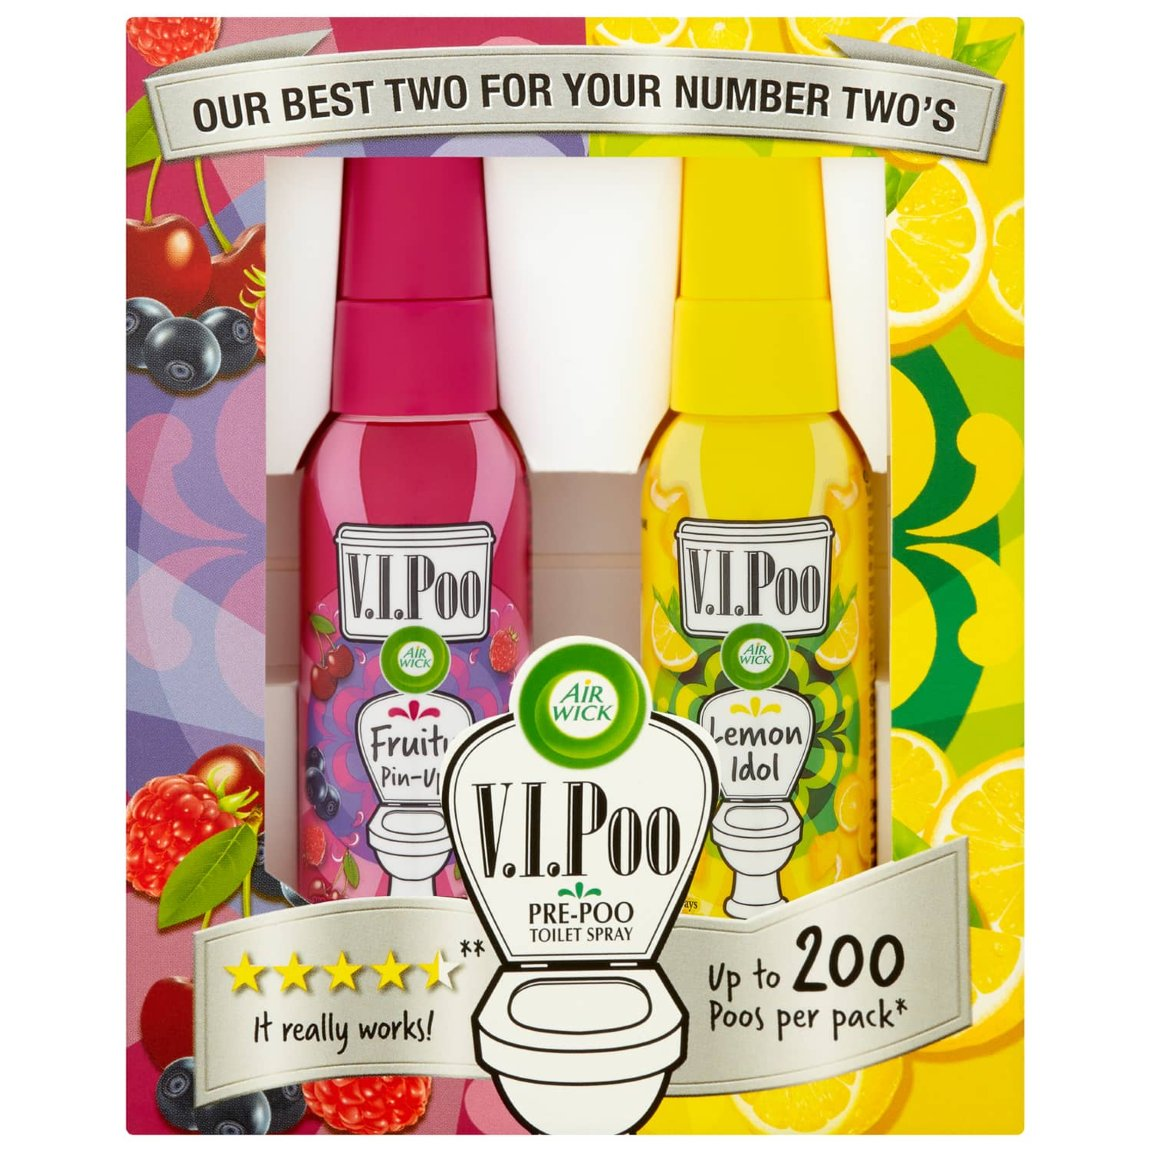 Air Wick VIPoo Toilet Perfume Fruity Pin-Up & Lemon Idol 2pk